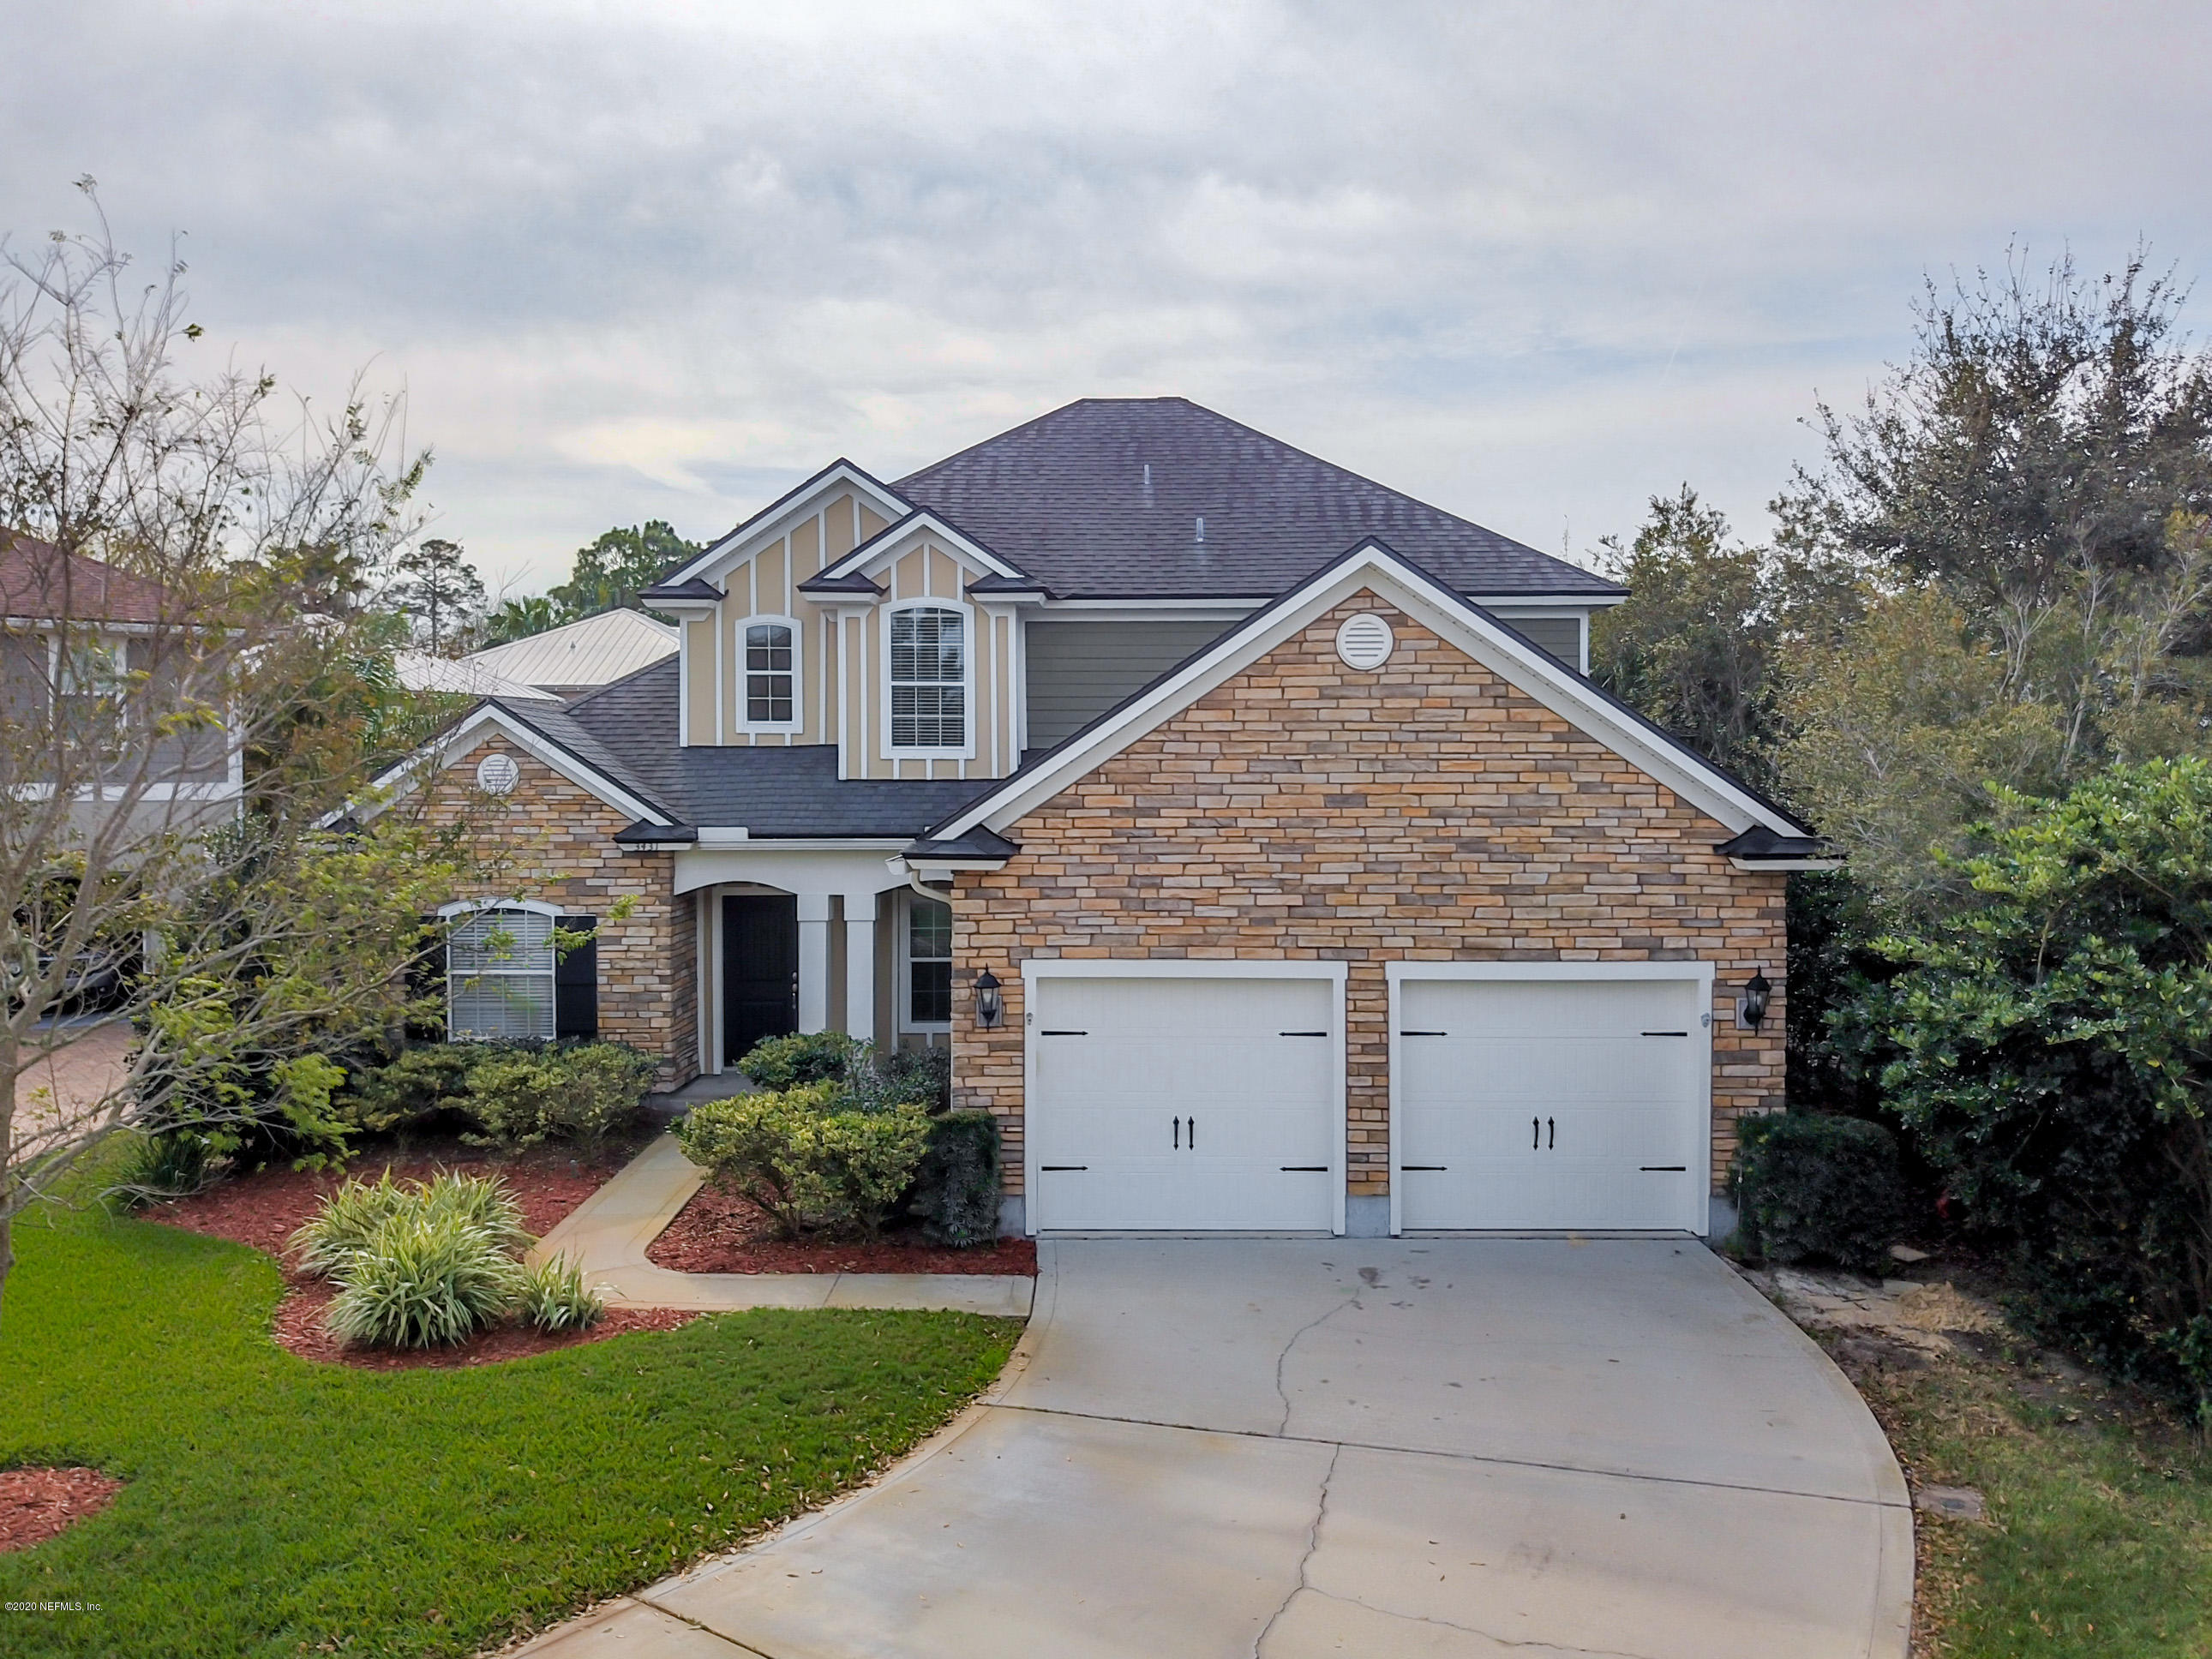 3431 MOURNING DOVE, JACKSONVILLE BEACH, FLORIDA 32250, 4 Bedrooms Bedrooms, ,2 BathroomsBathrooms,Residential,For sale,MOURNING DOVE,1040598